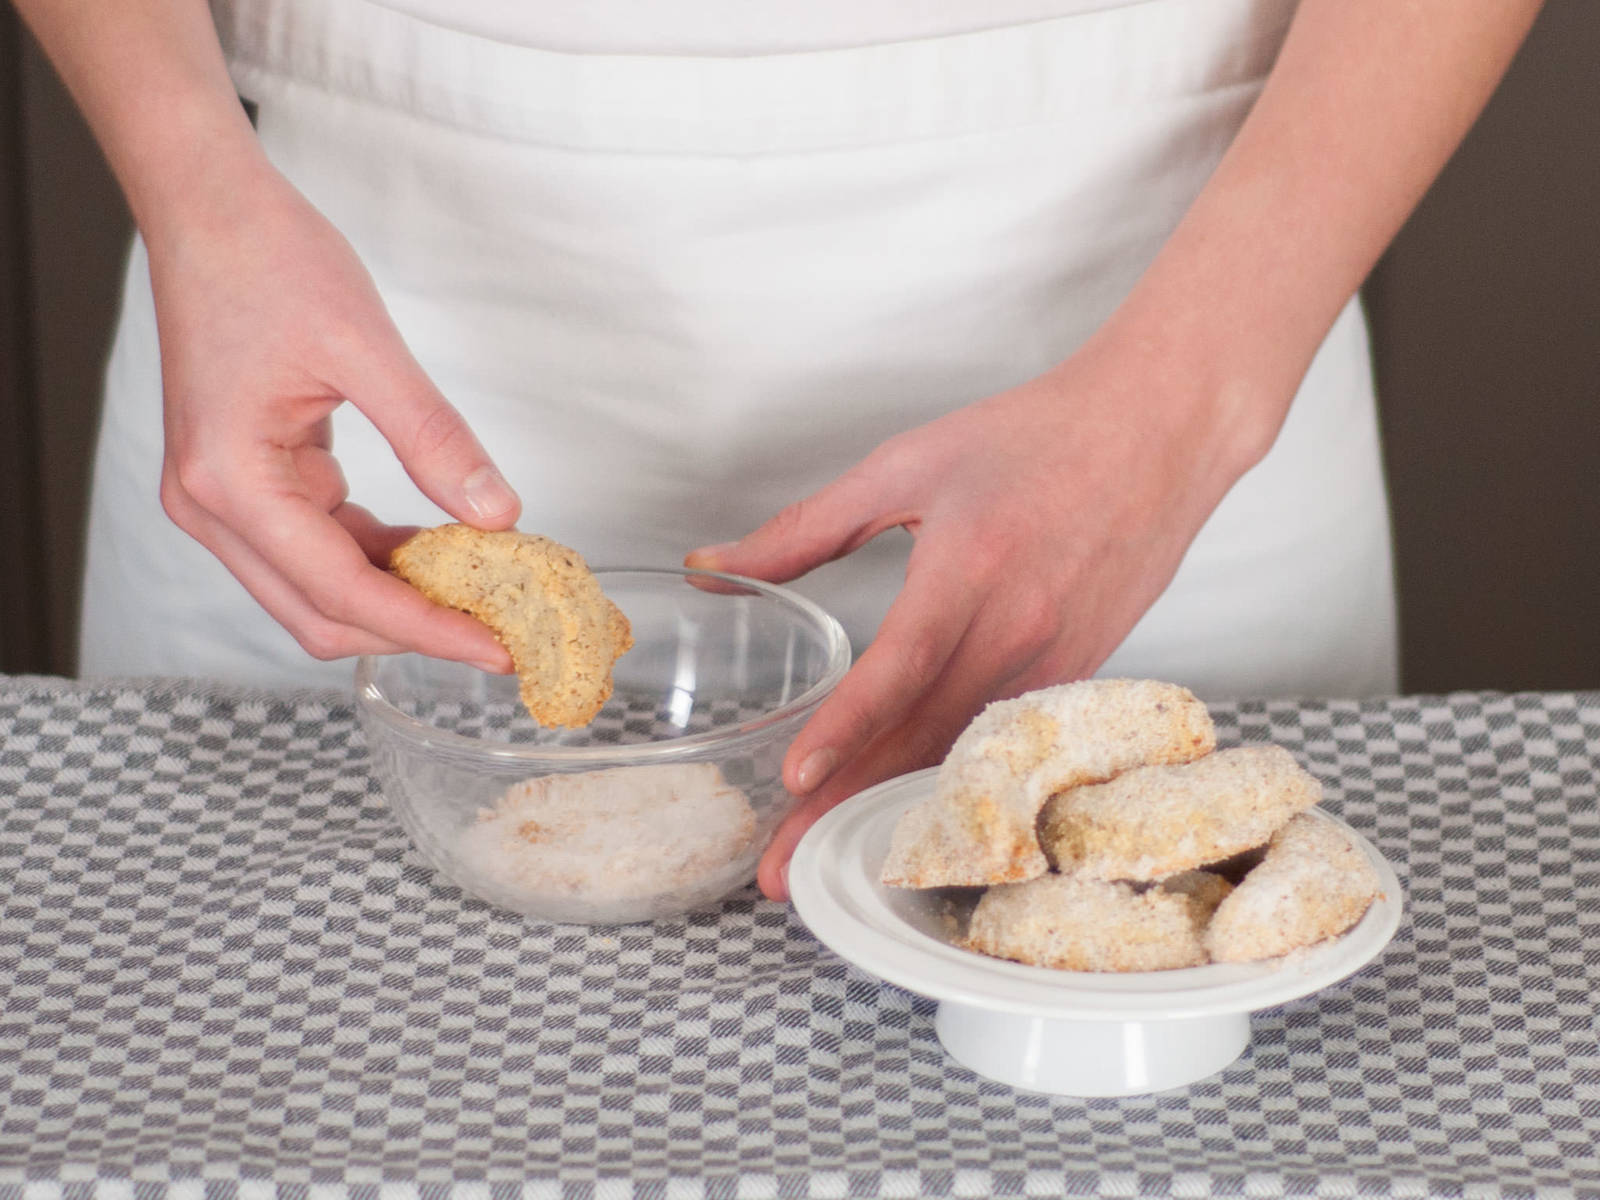 While the cookies are still warm, lightly coat with vanilla sugar. Enjoy.